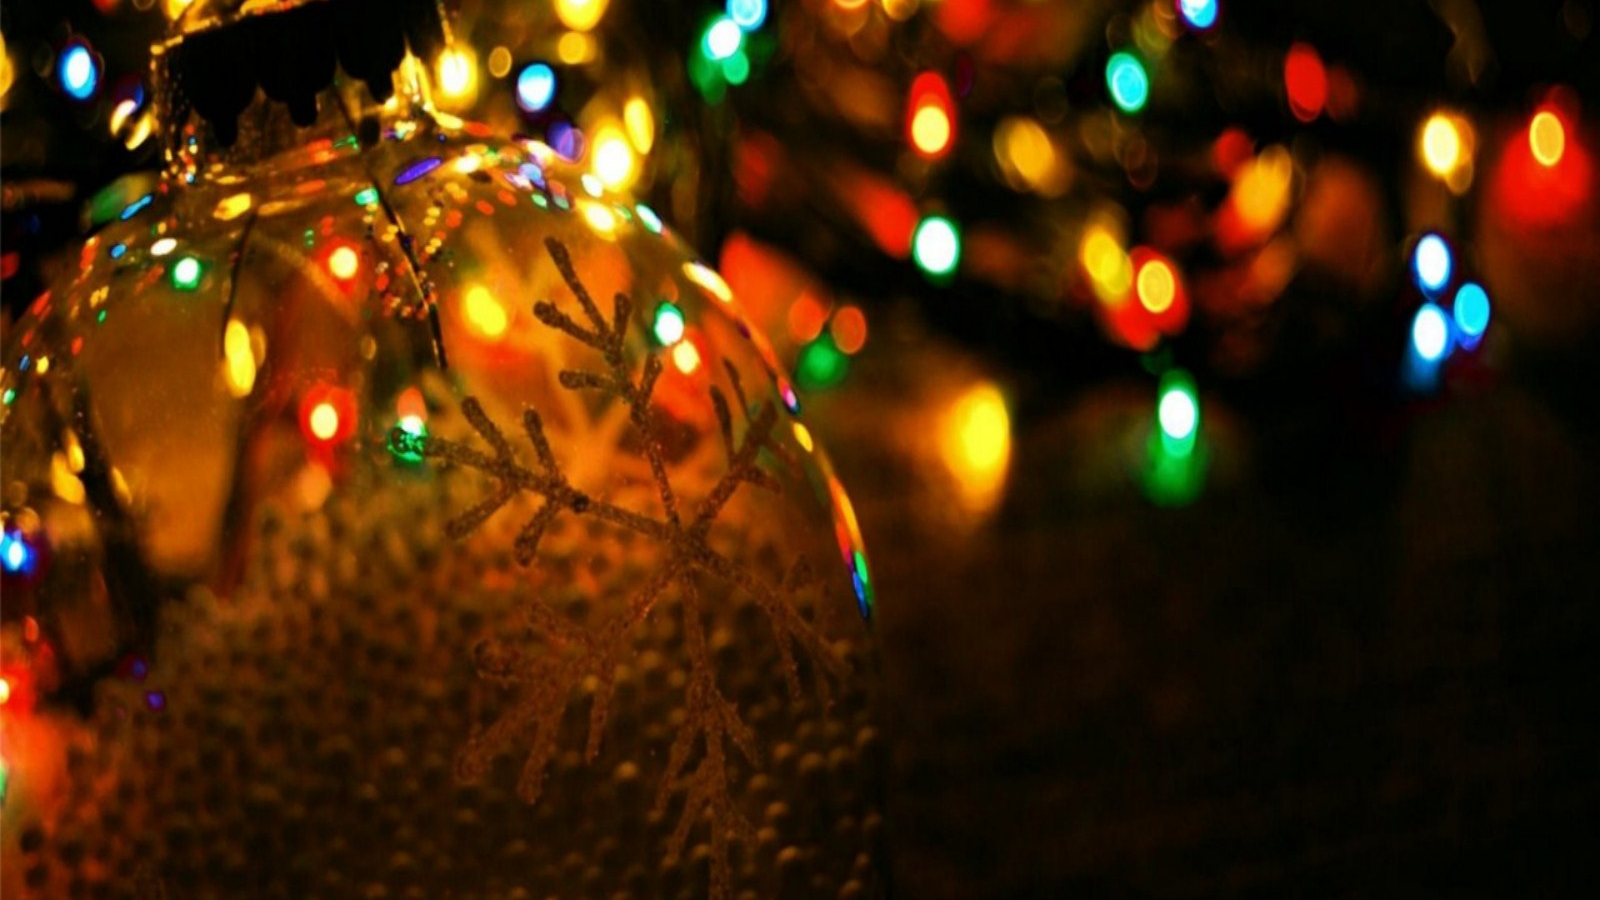 Free download Christmas Lights Iphone Background Viewing